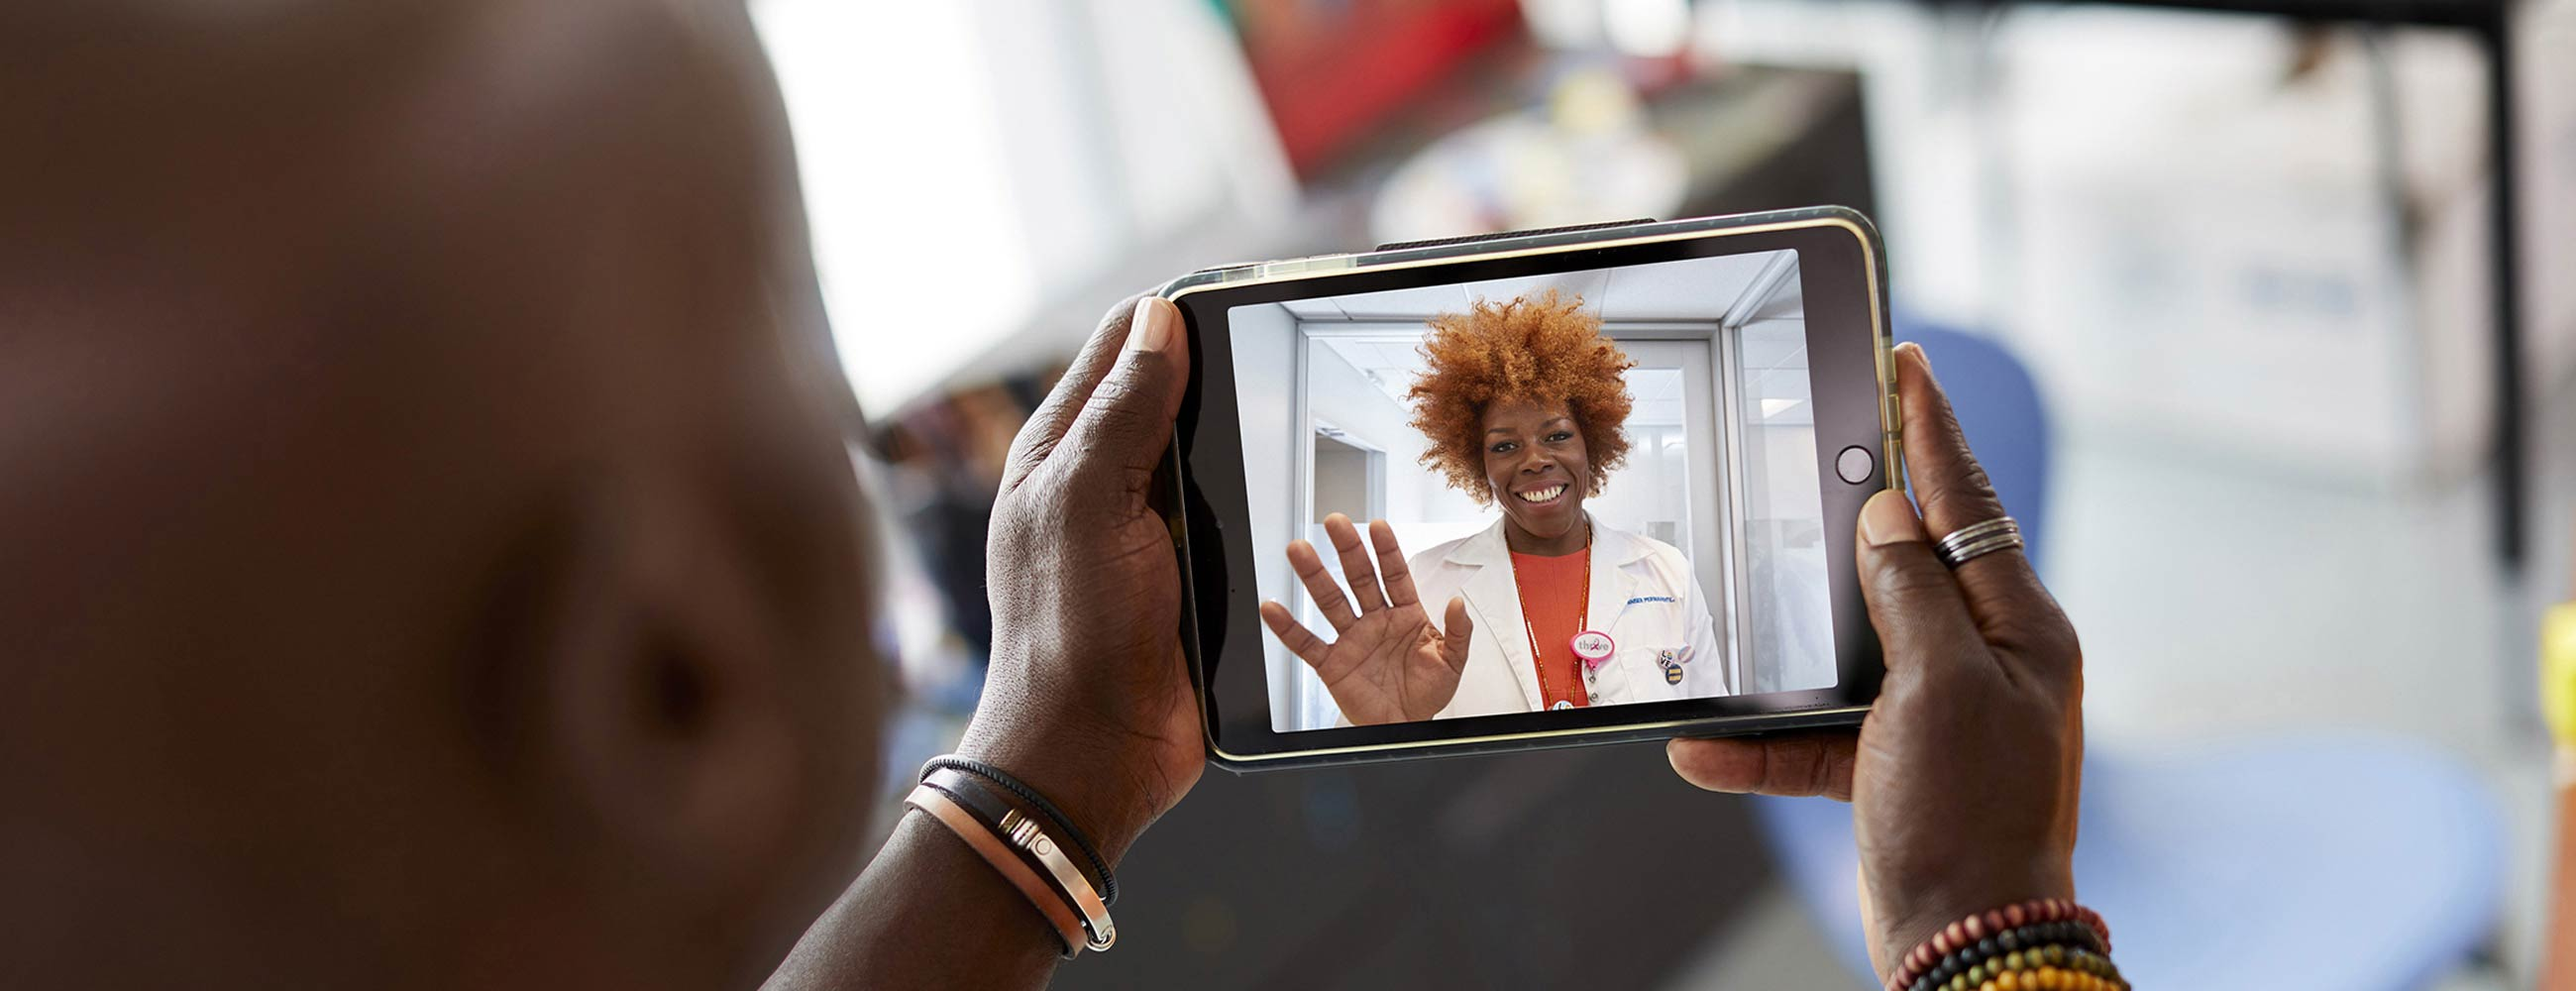 A smiling female physician waving while her patient holds a tablet during a telehealth visit.